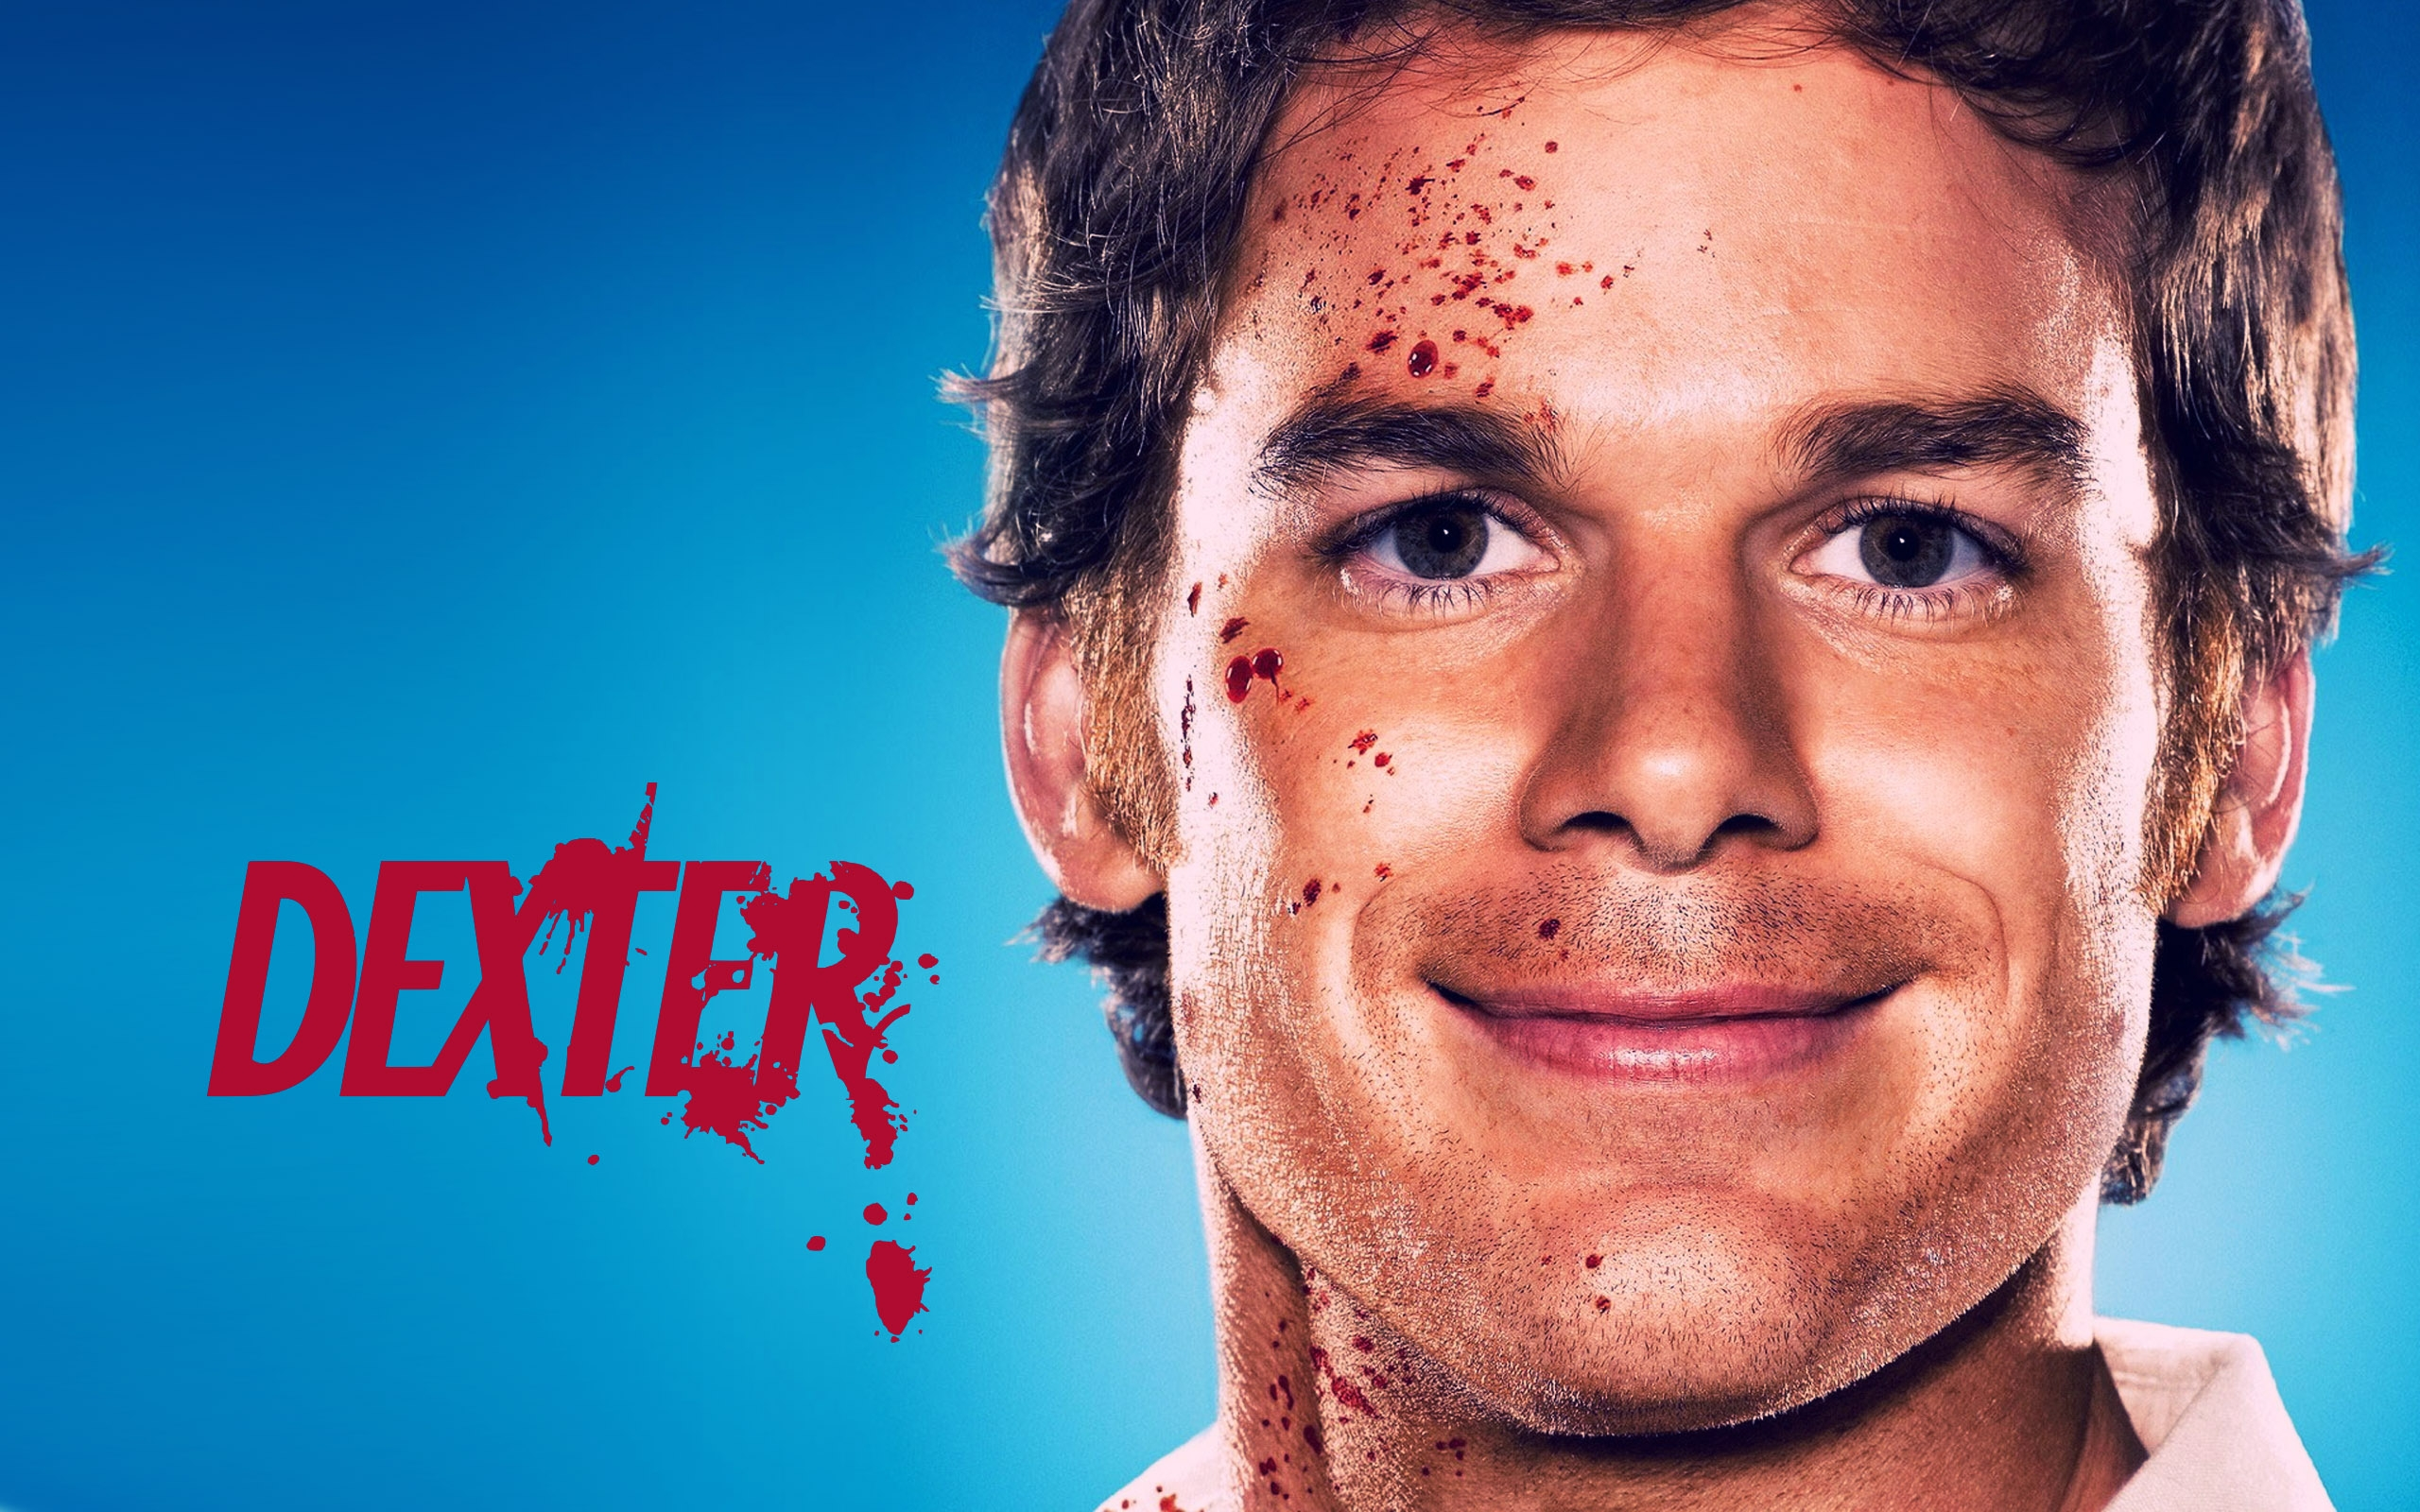 Dexter wallpaper 4